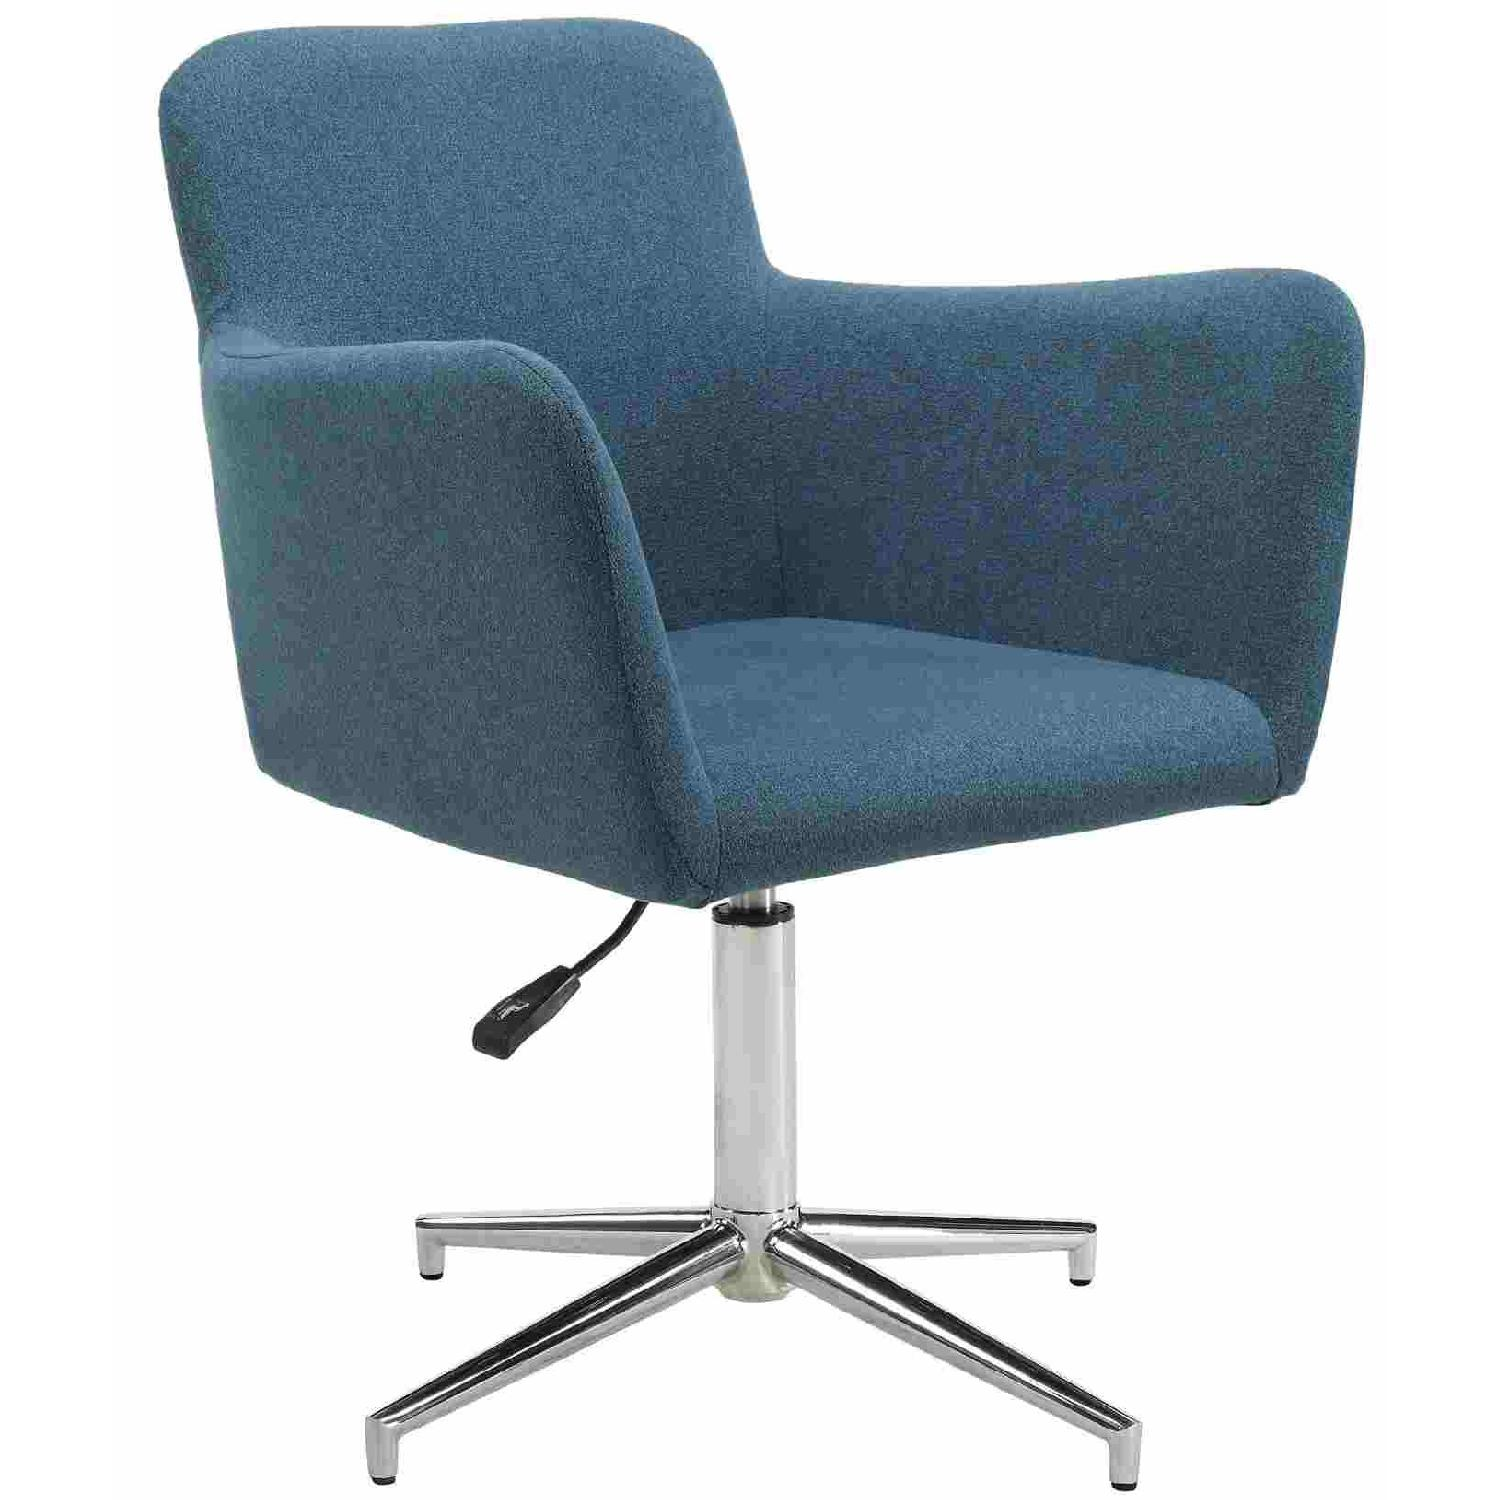 Modern Height Adjustable Dining Chair in Blue Fabric